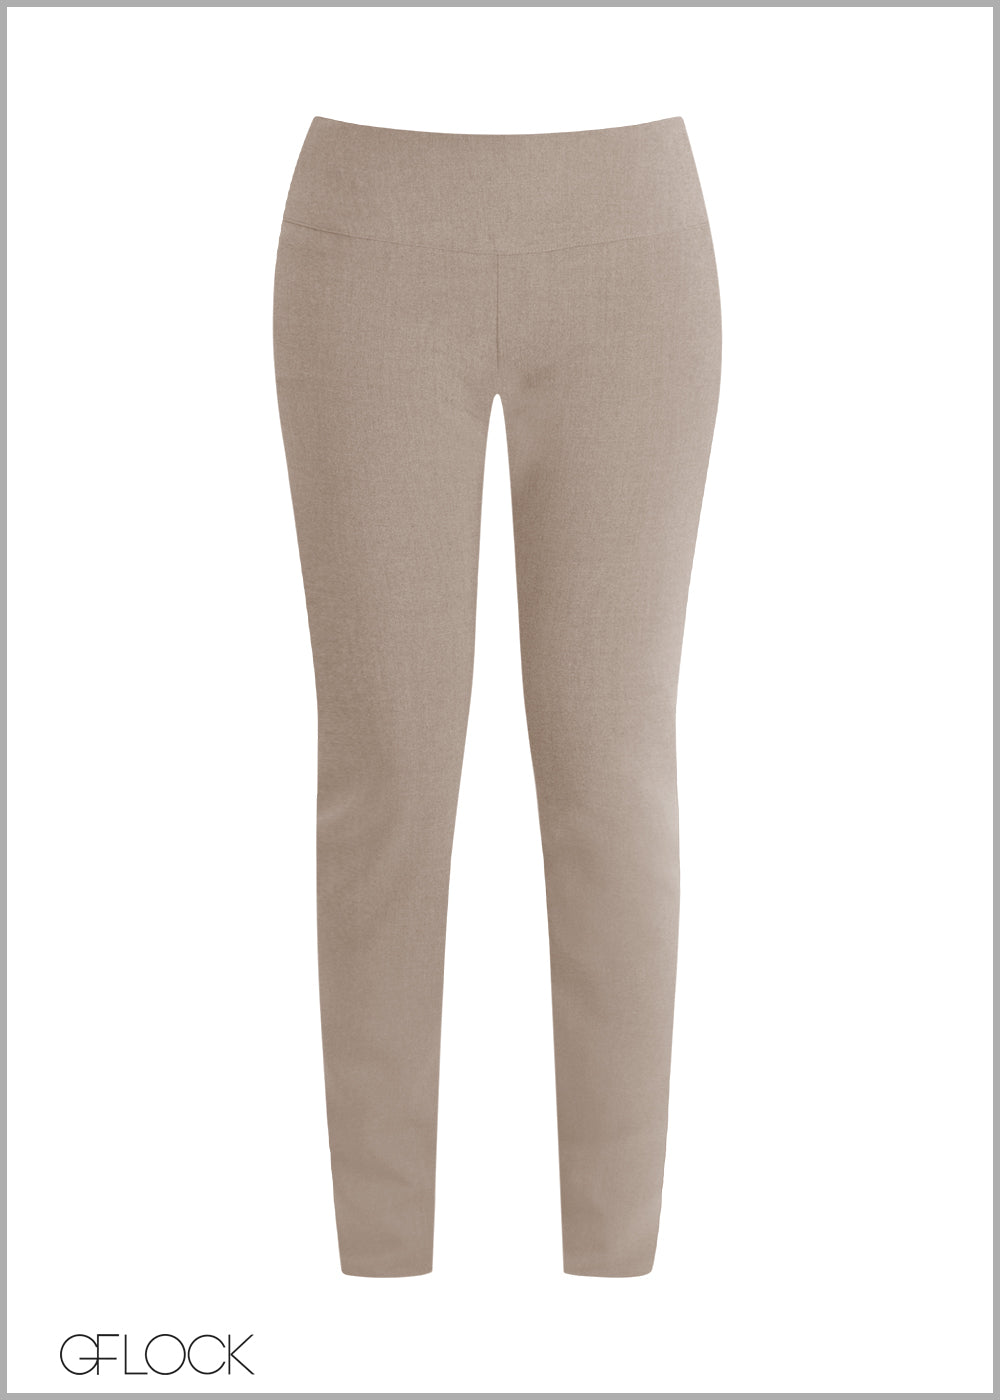 High Waist Work Wear Pant